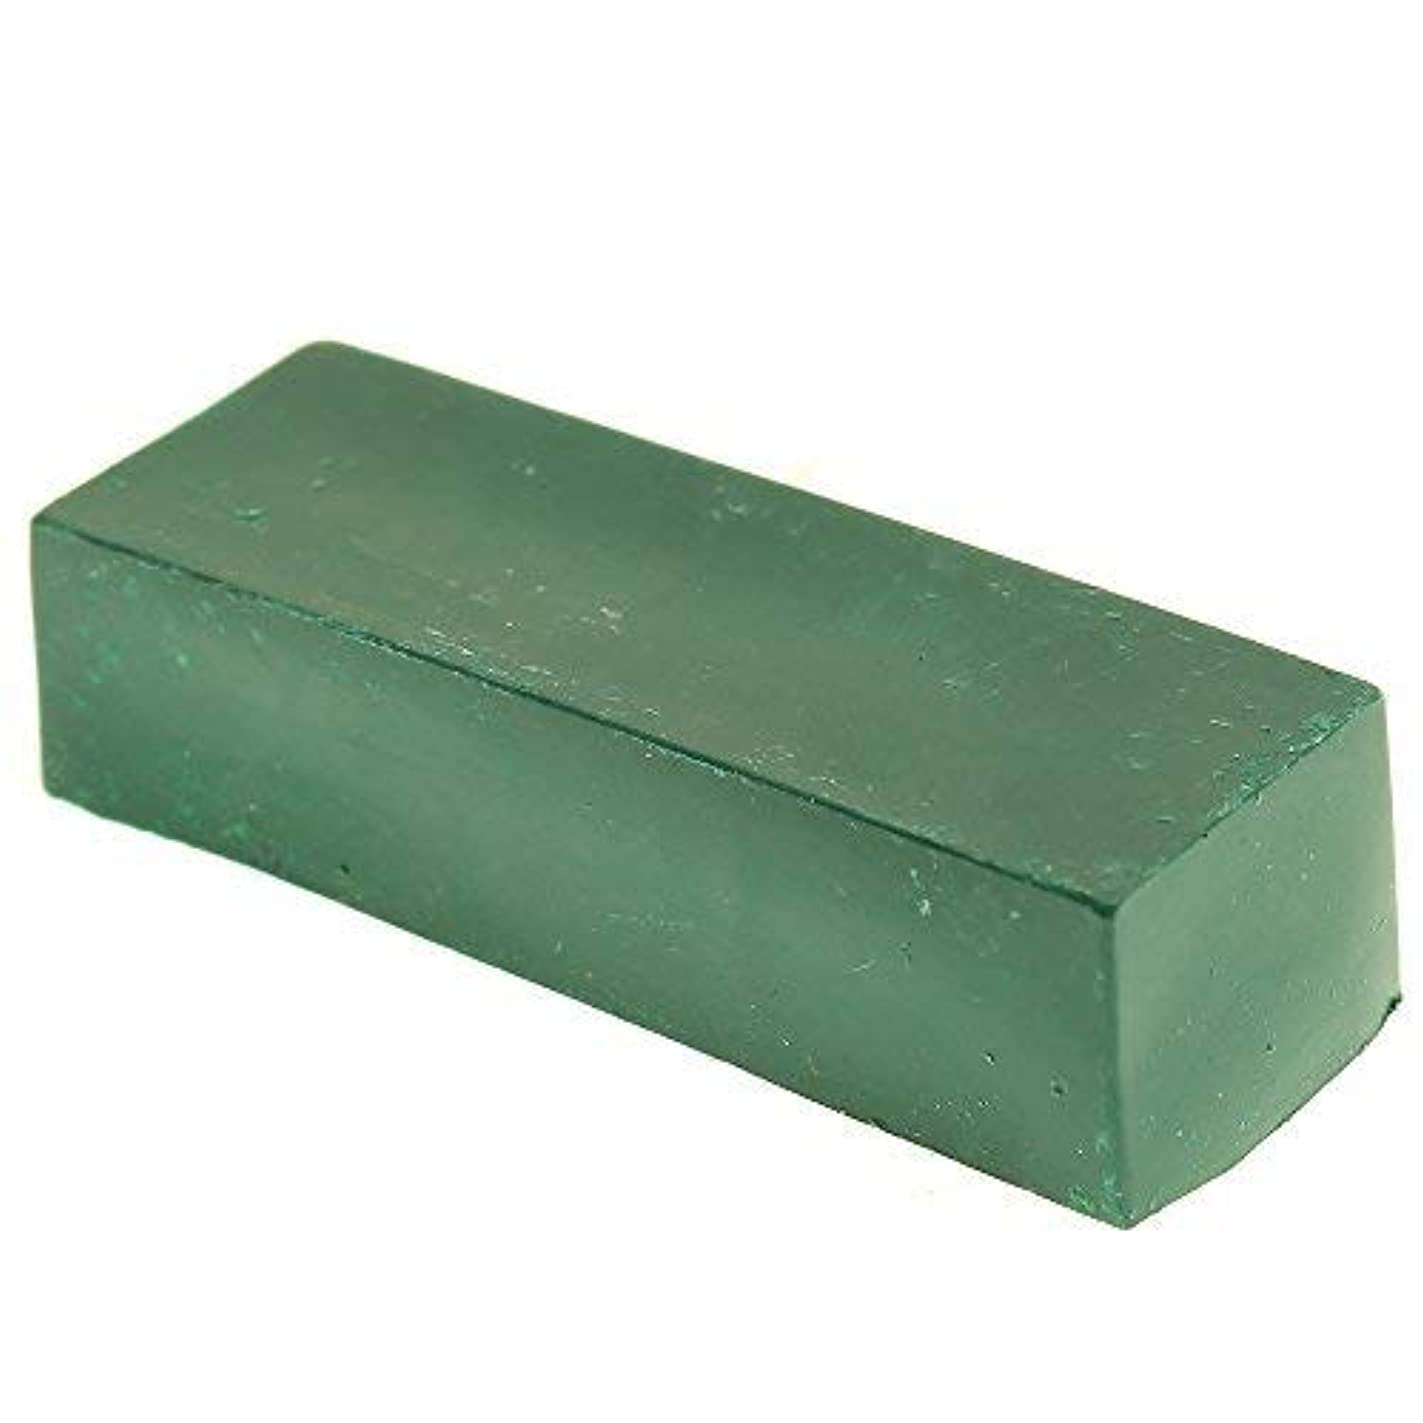 Polishing Compound Fine Green Buffing Compound 1.6 OZ Leather Strop Sharpening Polishing Compounds